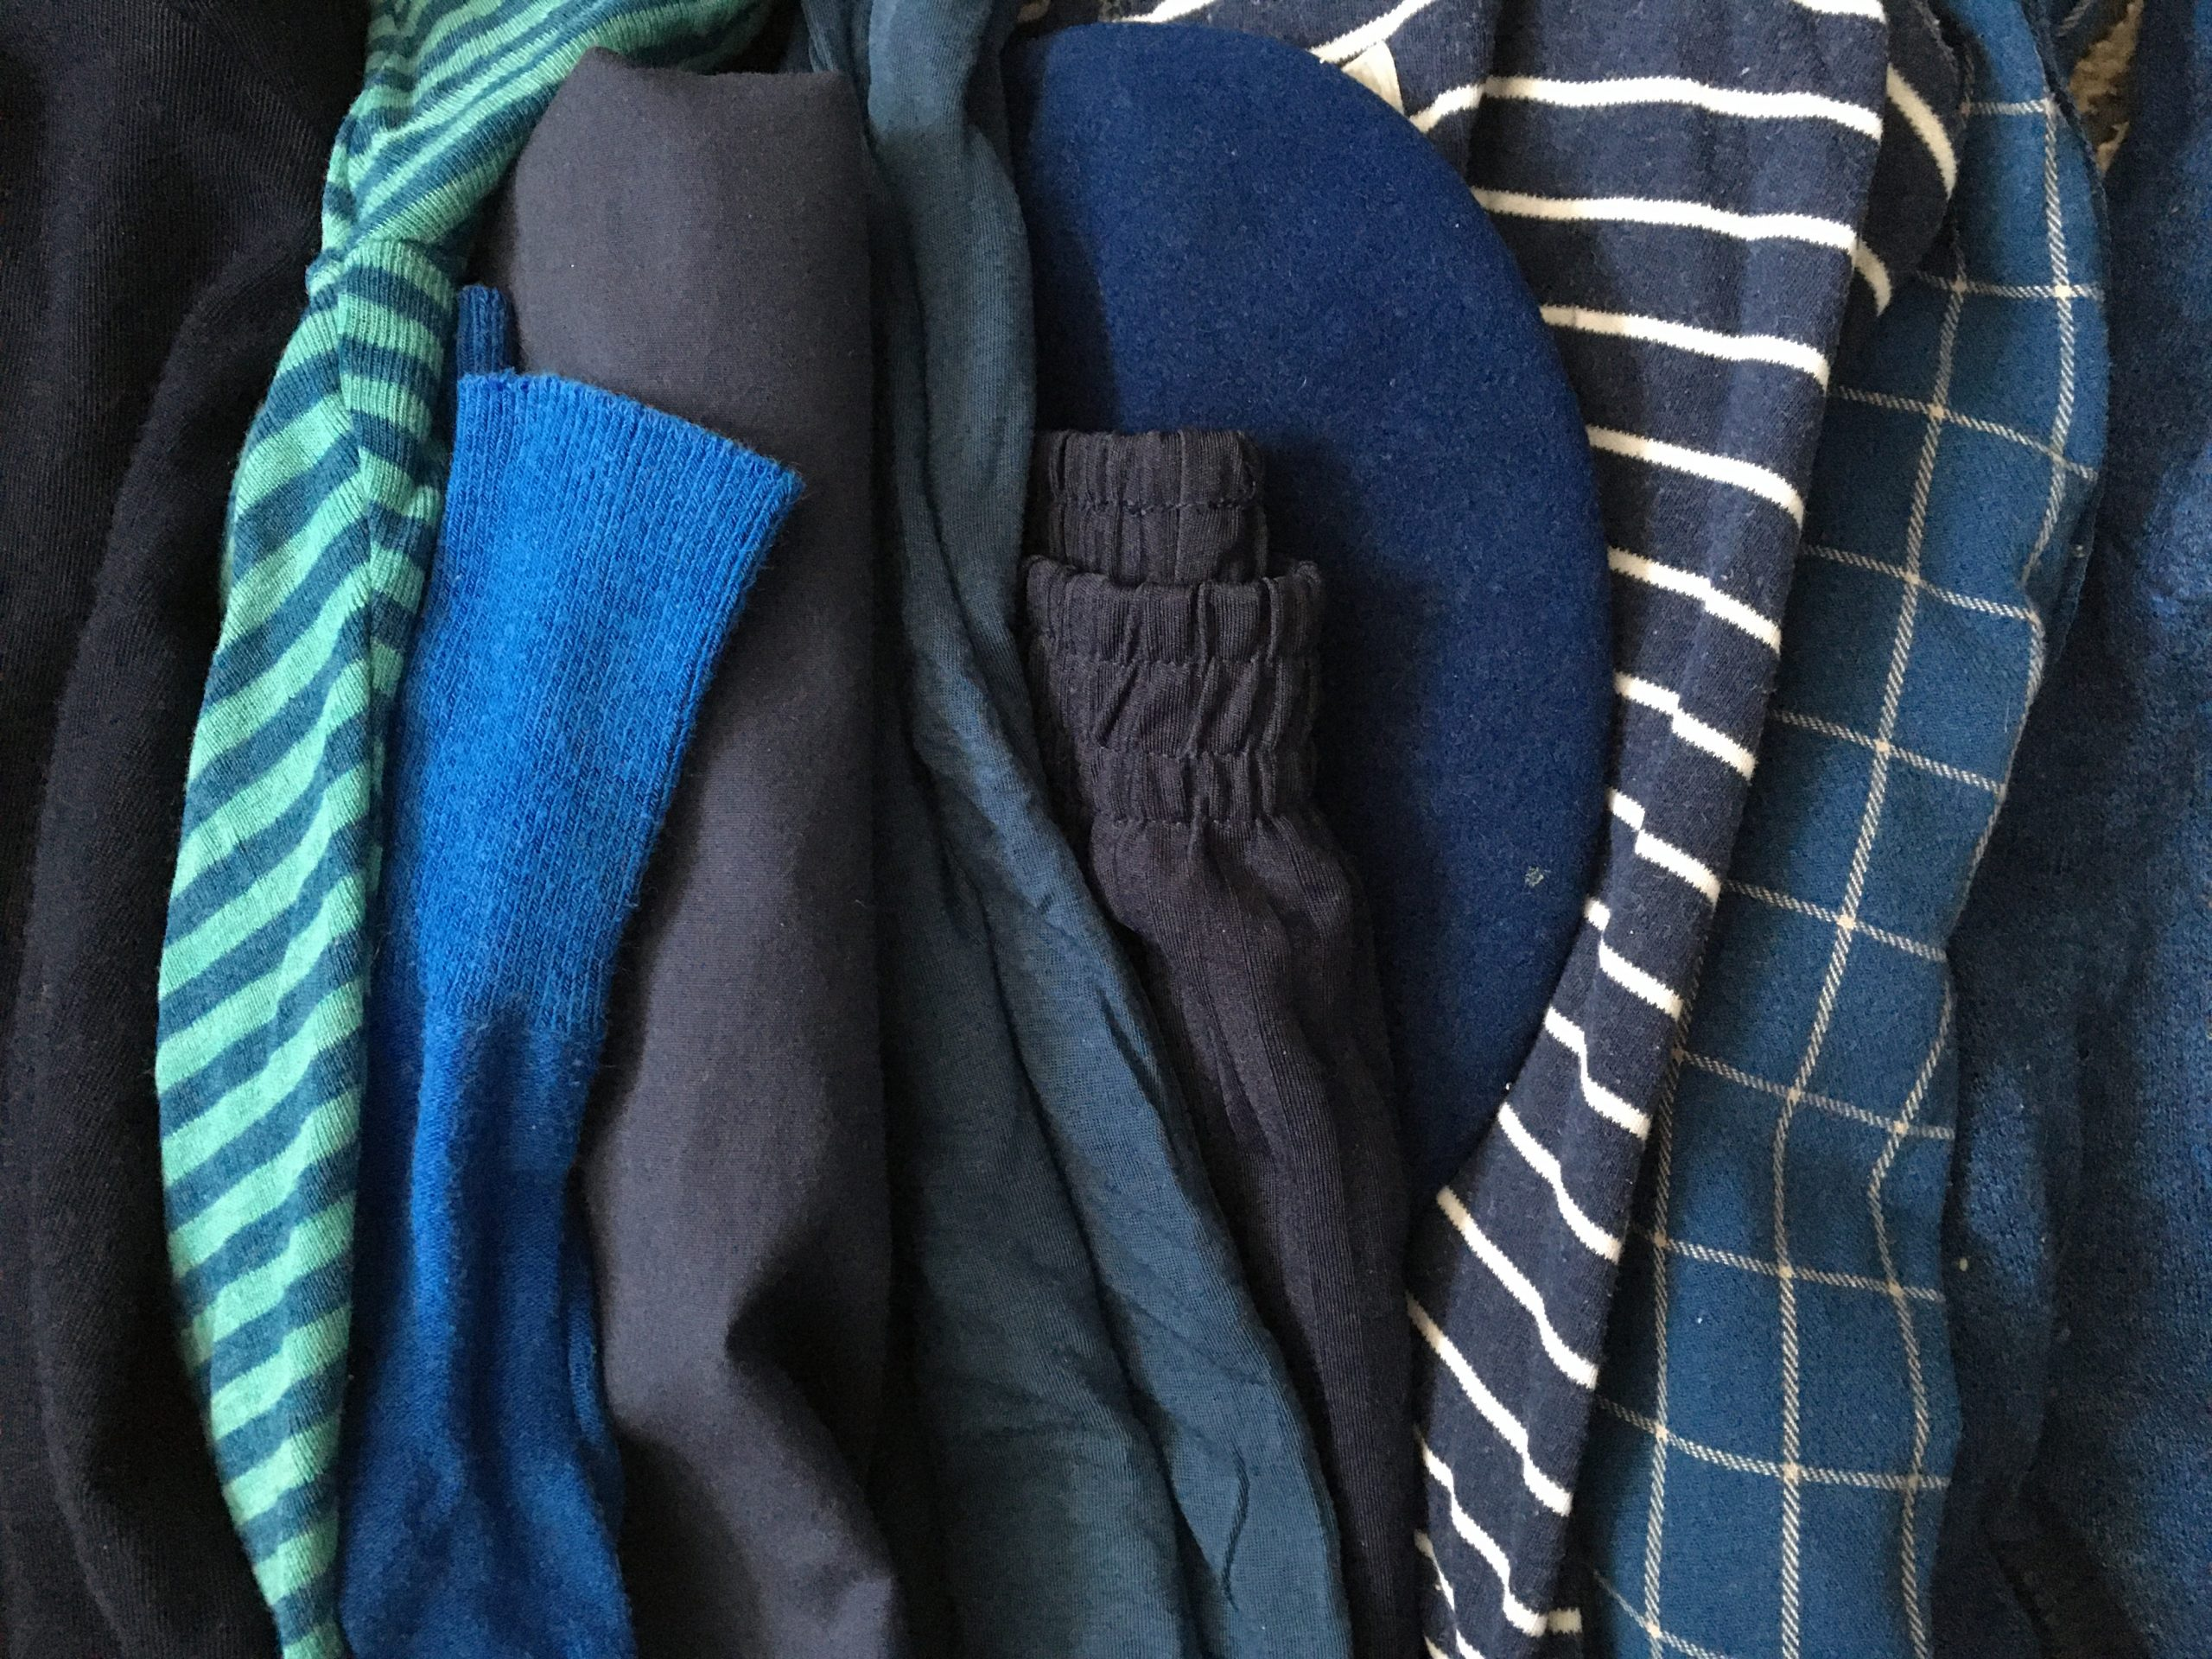 A pile of blue clothes